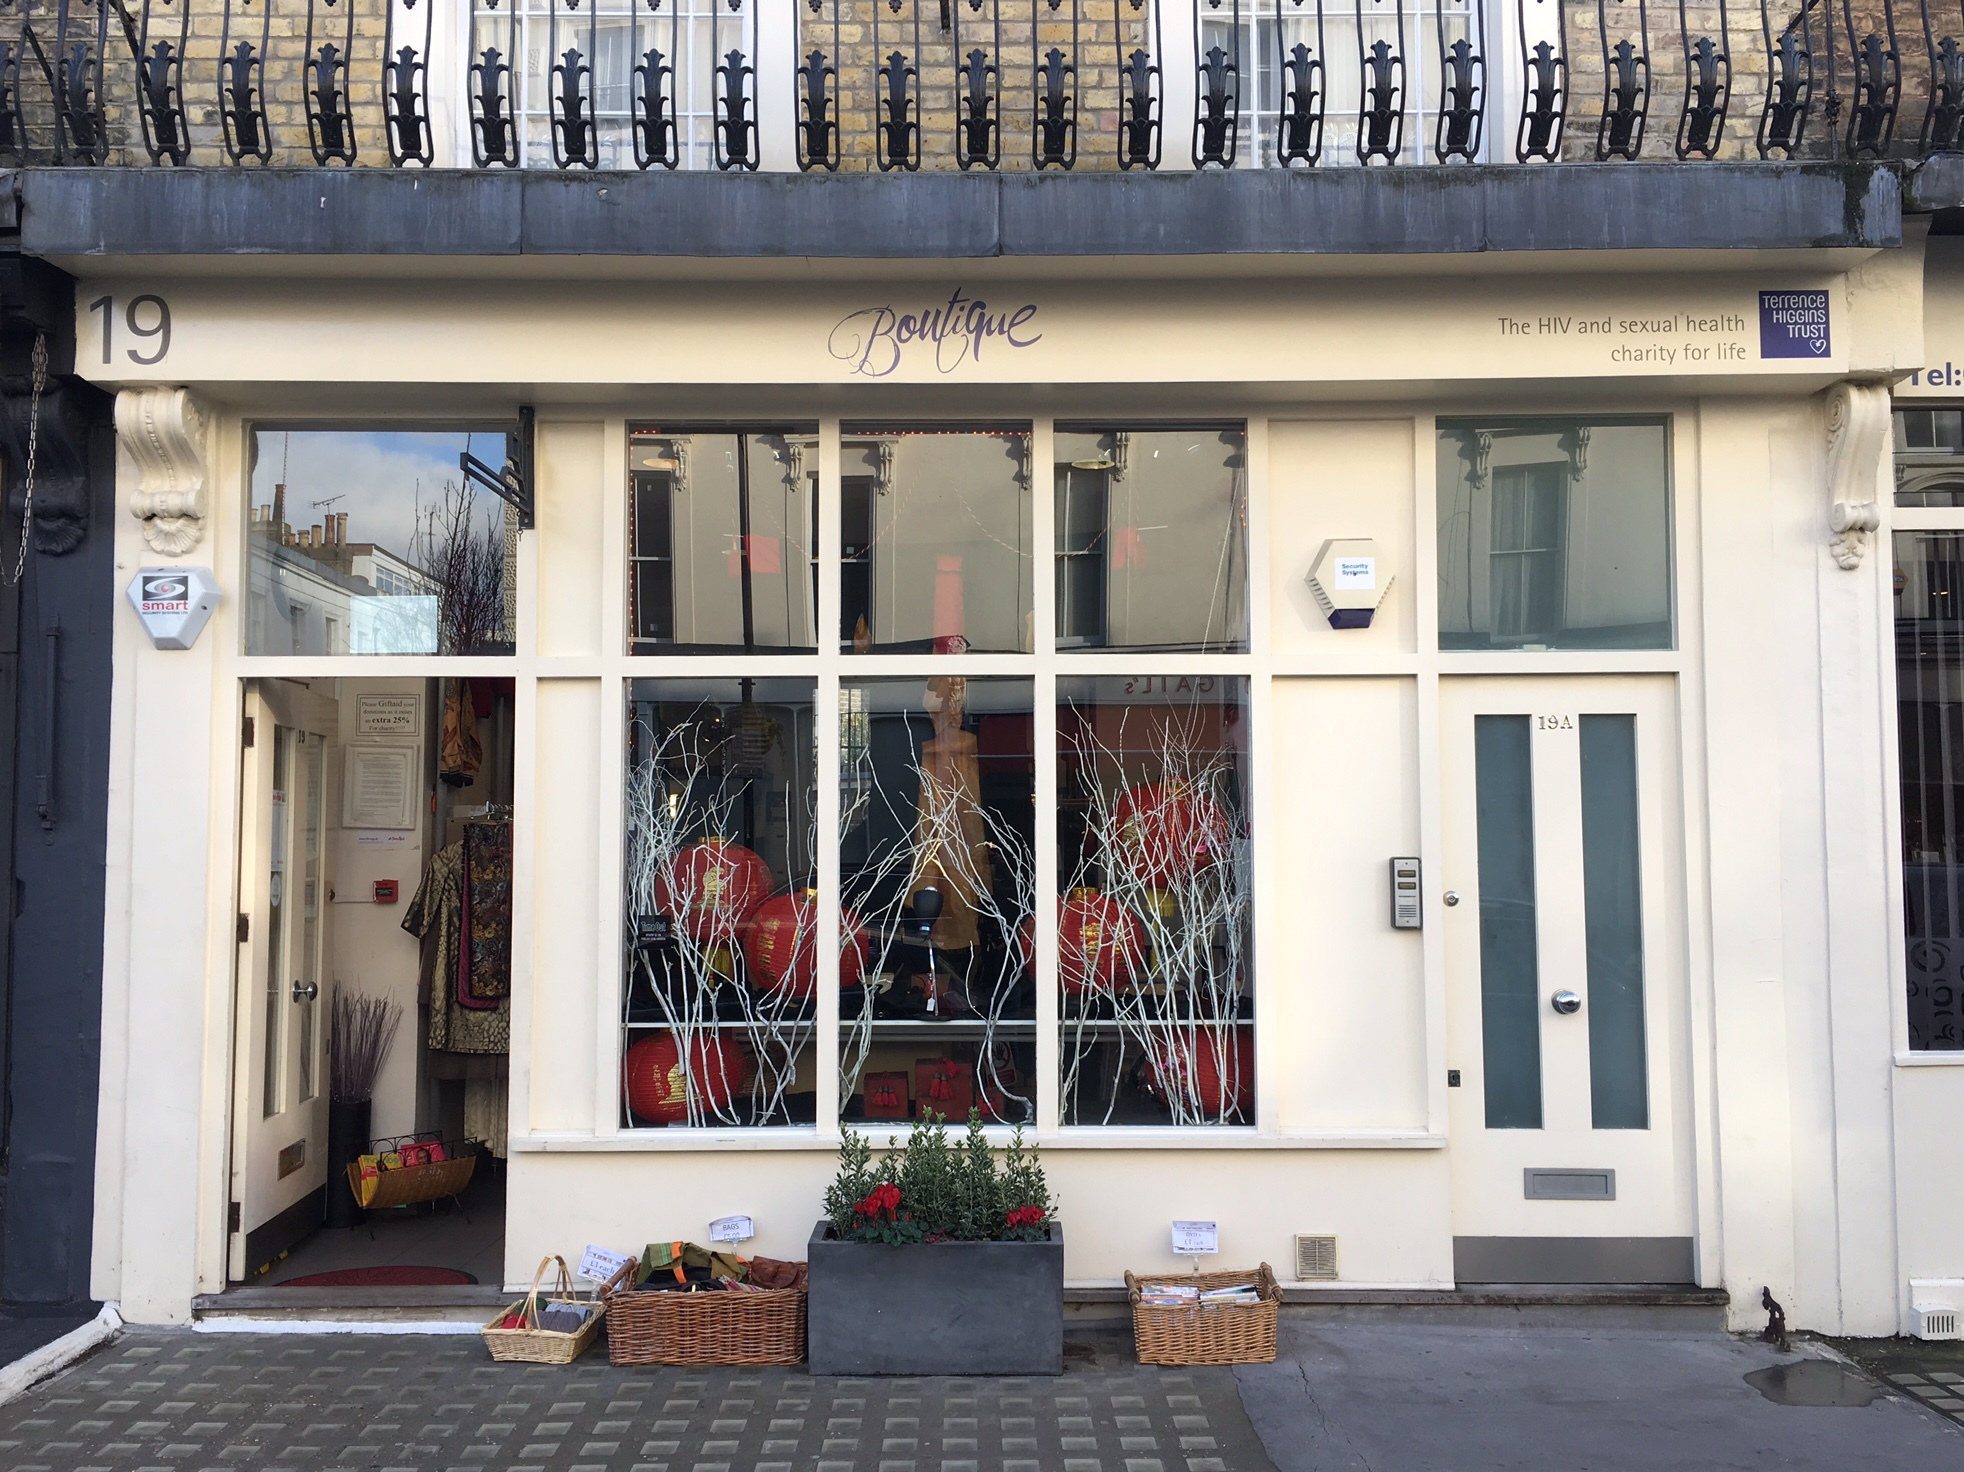 Front of the Boutique Shop in Pimlico